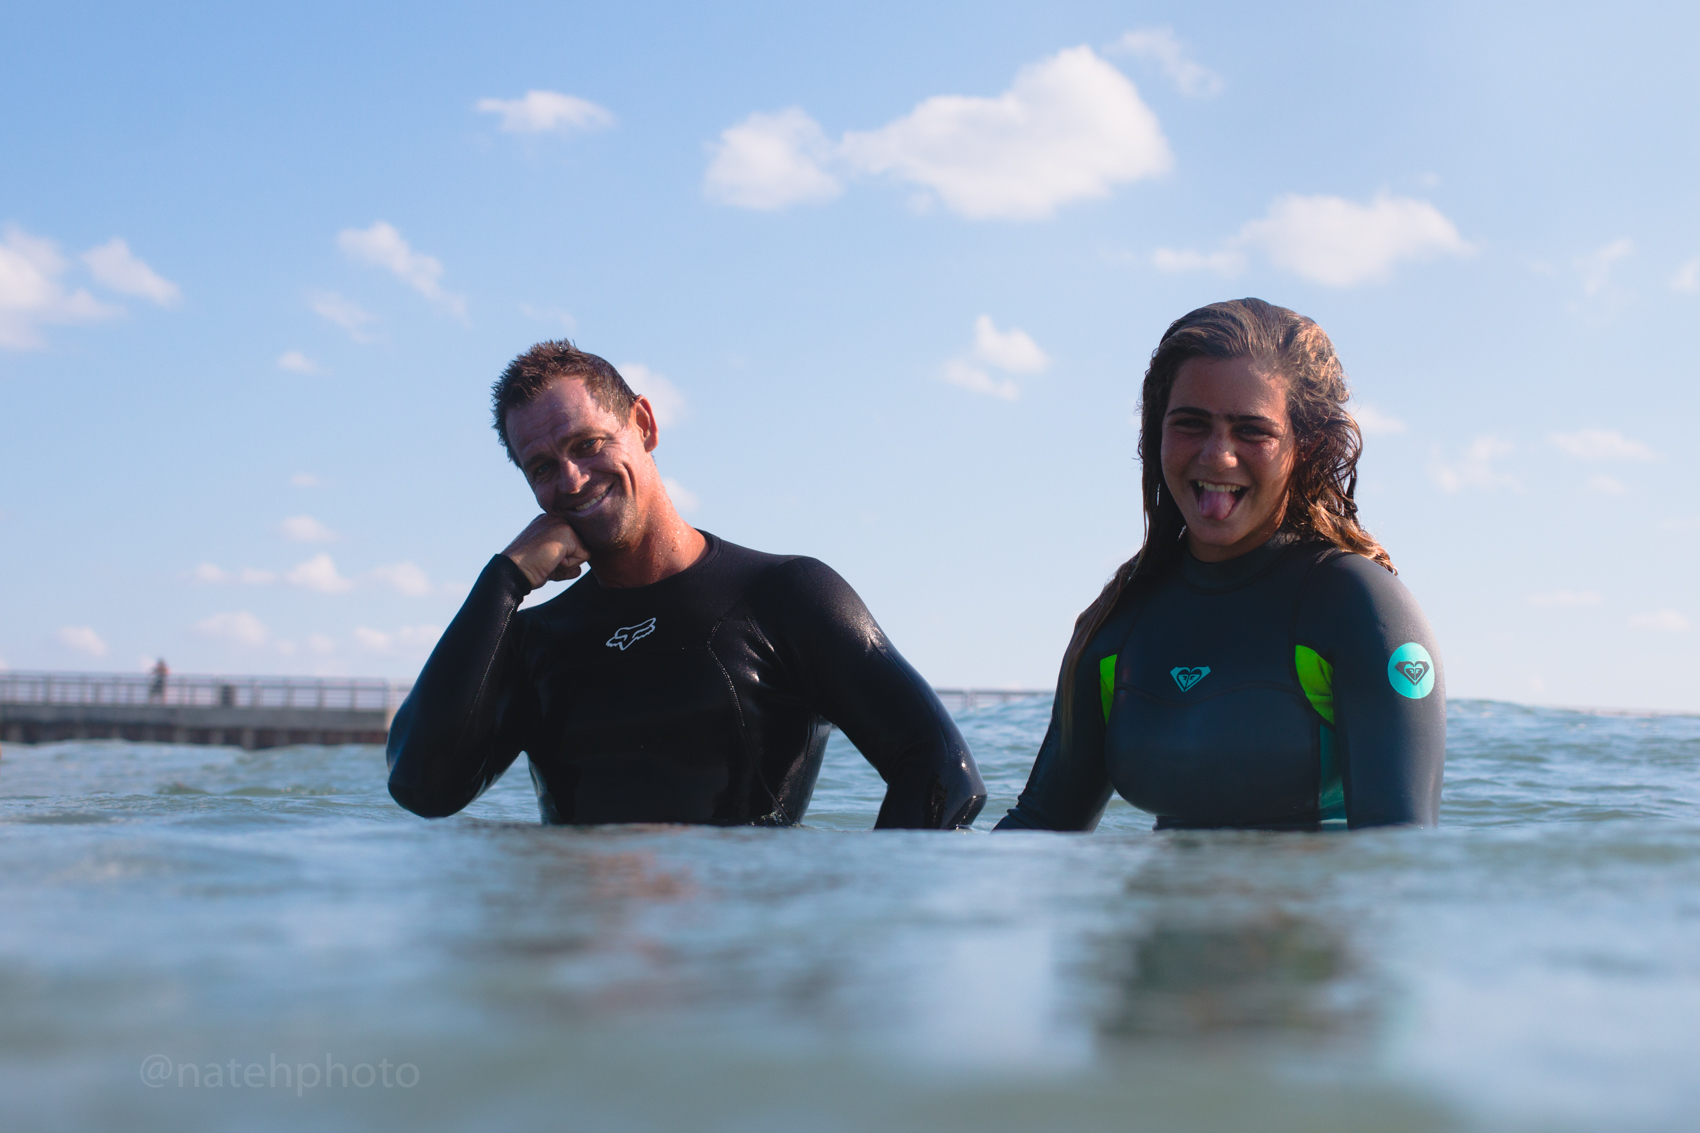 Ct Taylor and Caroline Marks Surfing at Sebastian Inlet, FL. Photography by Nathaniel Harrington